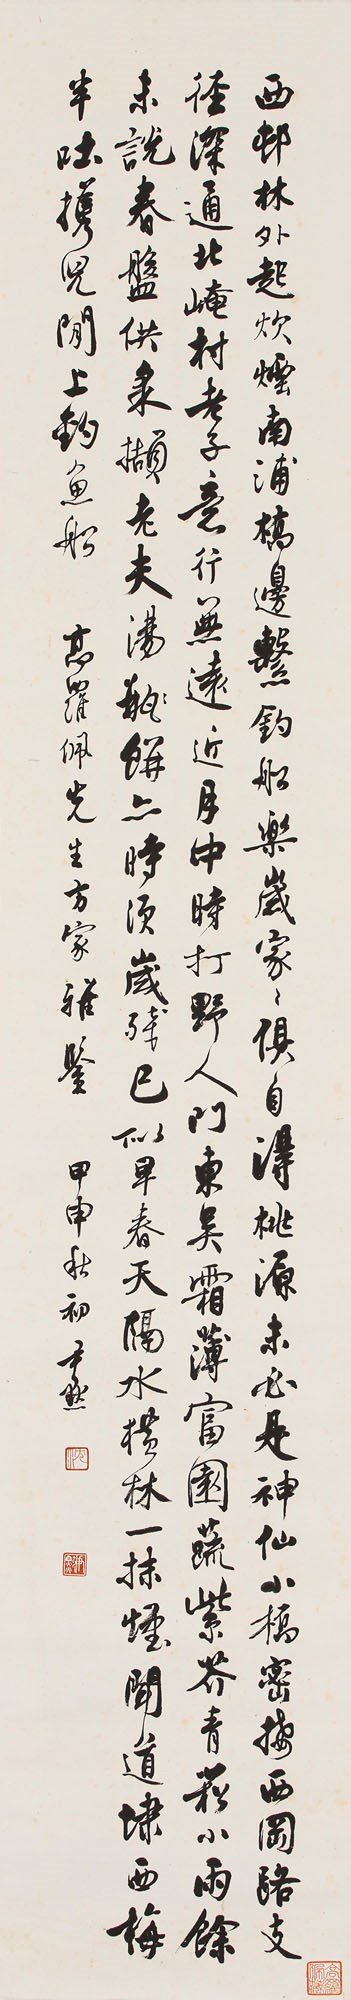 Shen Yinmo (1883-1971), Poems in Running Script Calligraphy. 140.5 x 24.7 cm (55¼ x 9¾ in). Estimate HK$50,000-70,000. Offered in On Wings of Song Chinese Paintings and Calligraphy from the Collection of Robert van Gulik, 18 November to 2 December 2020, Online